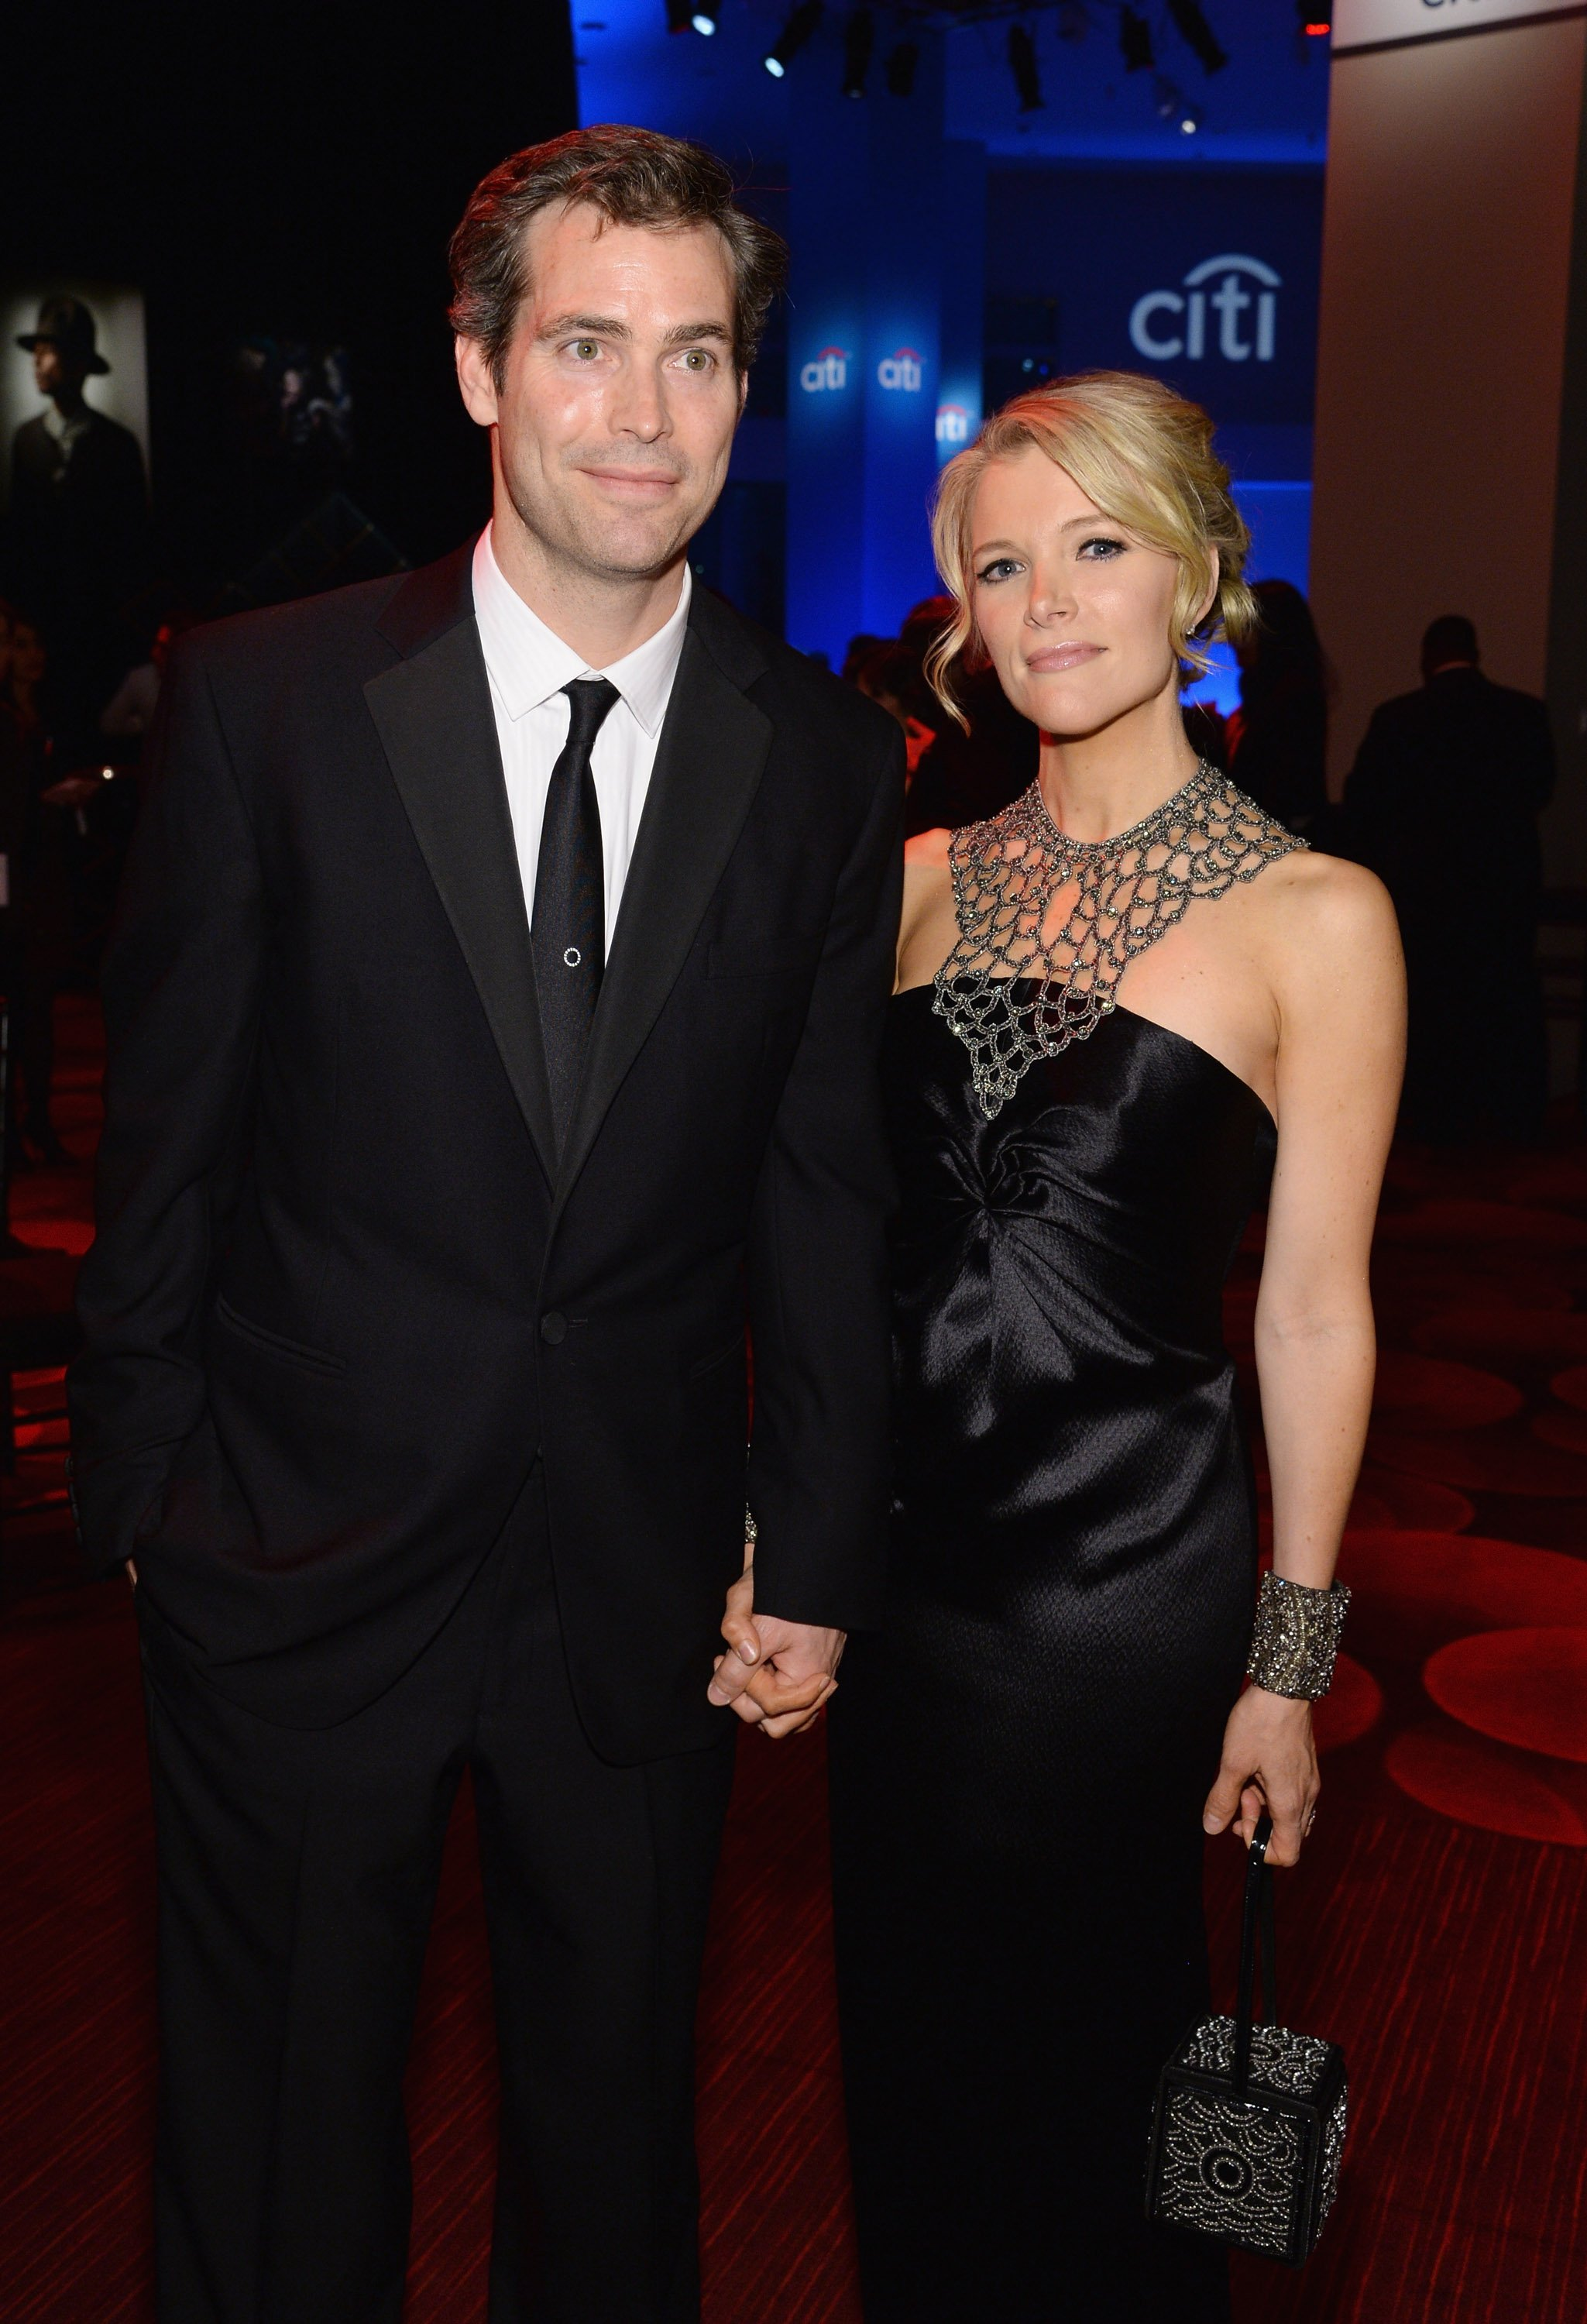 Douglas Brunt (L) and Honoree Megyn Kelly attend the TIME 100 Gala, TIME's 100 most influential people in the world, at Jazz at Lincoln Center on April 29, 2014, in New York City. | Source: Getty Images.